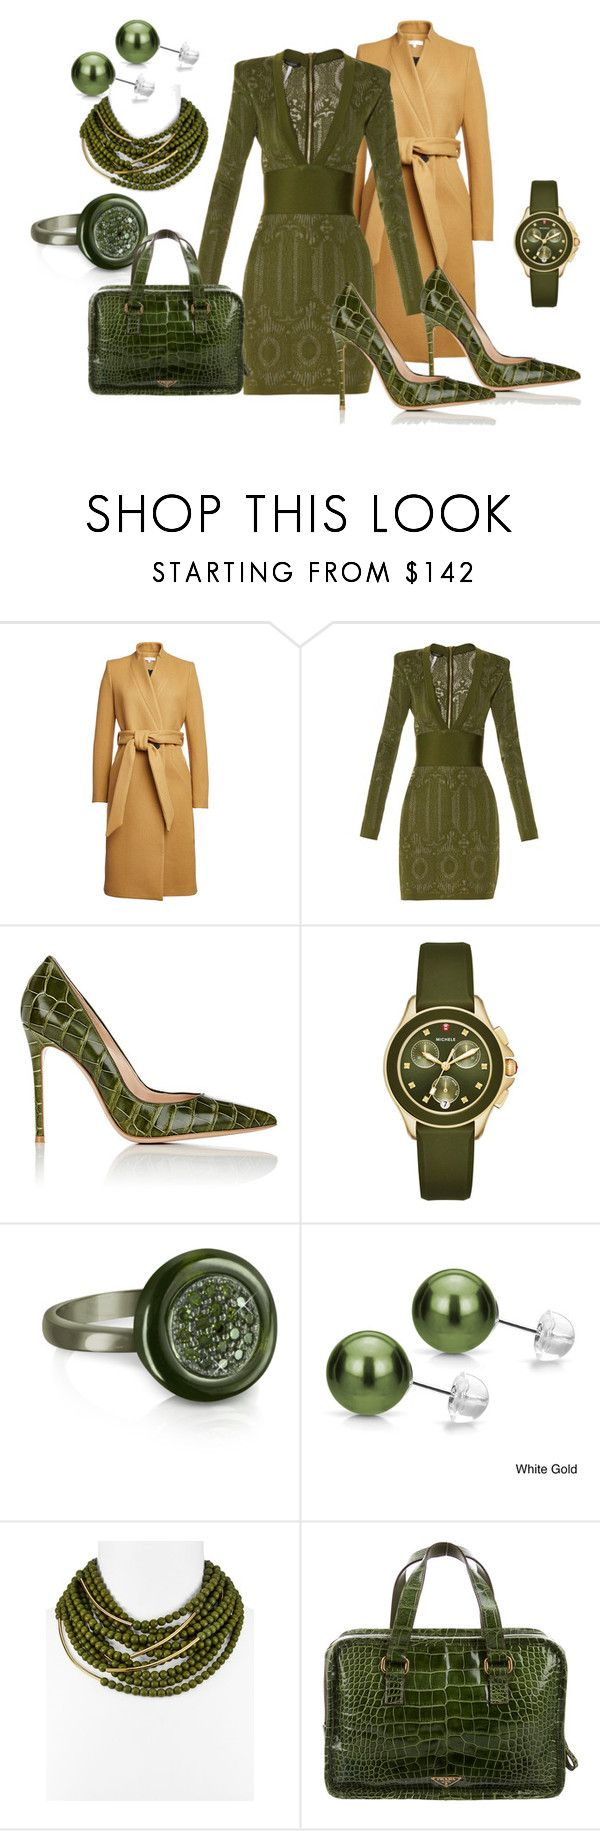 """Untitled #1225"" by deirdre35 ❤ liked on Polyvore featuring IRO, Balmain, Gianvito Rossi, Michele, Azhar, DaVonna, Fairchild Baldwin and Prada"